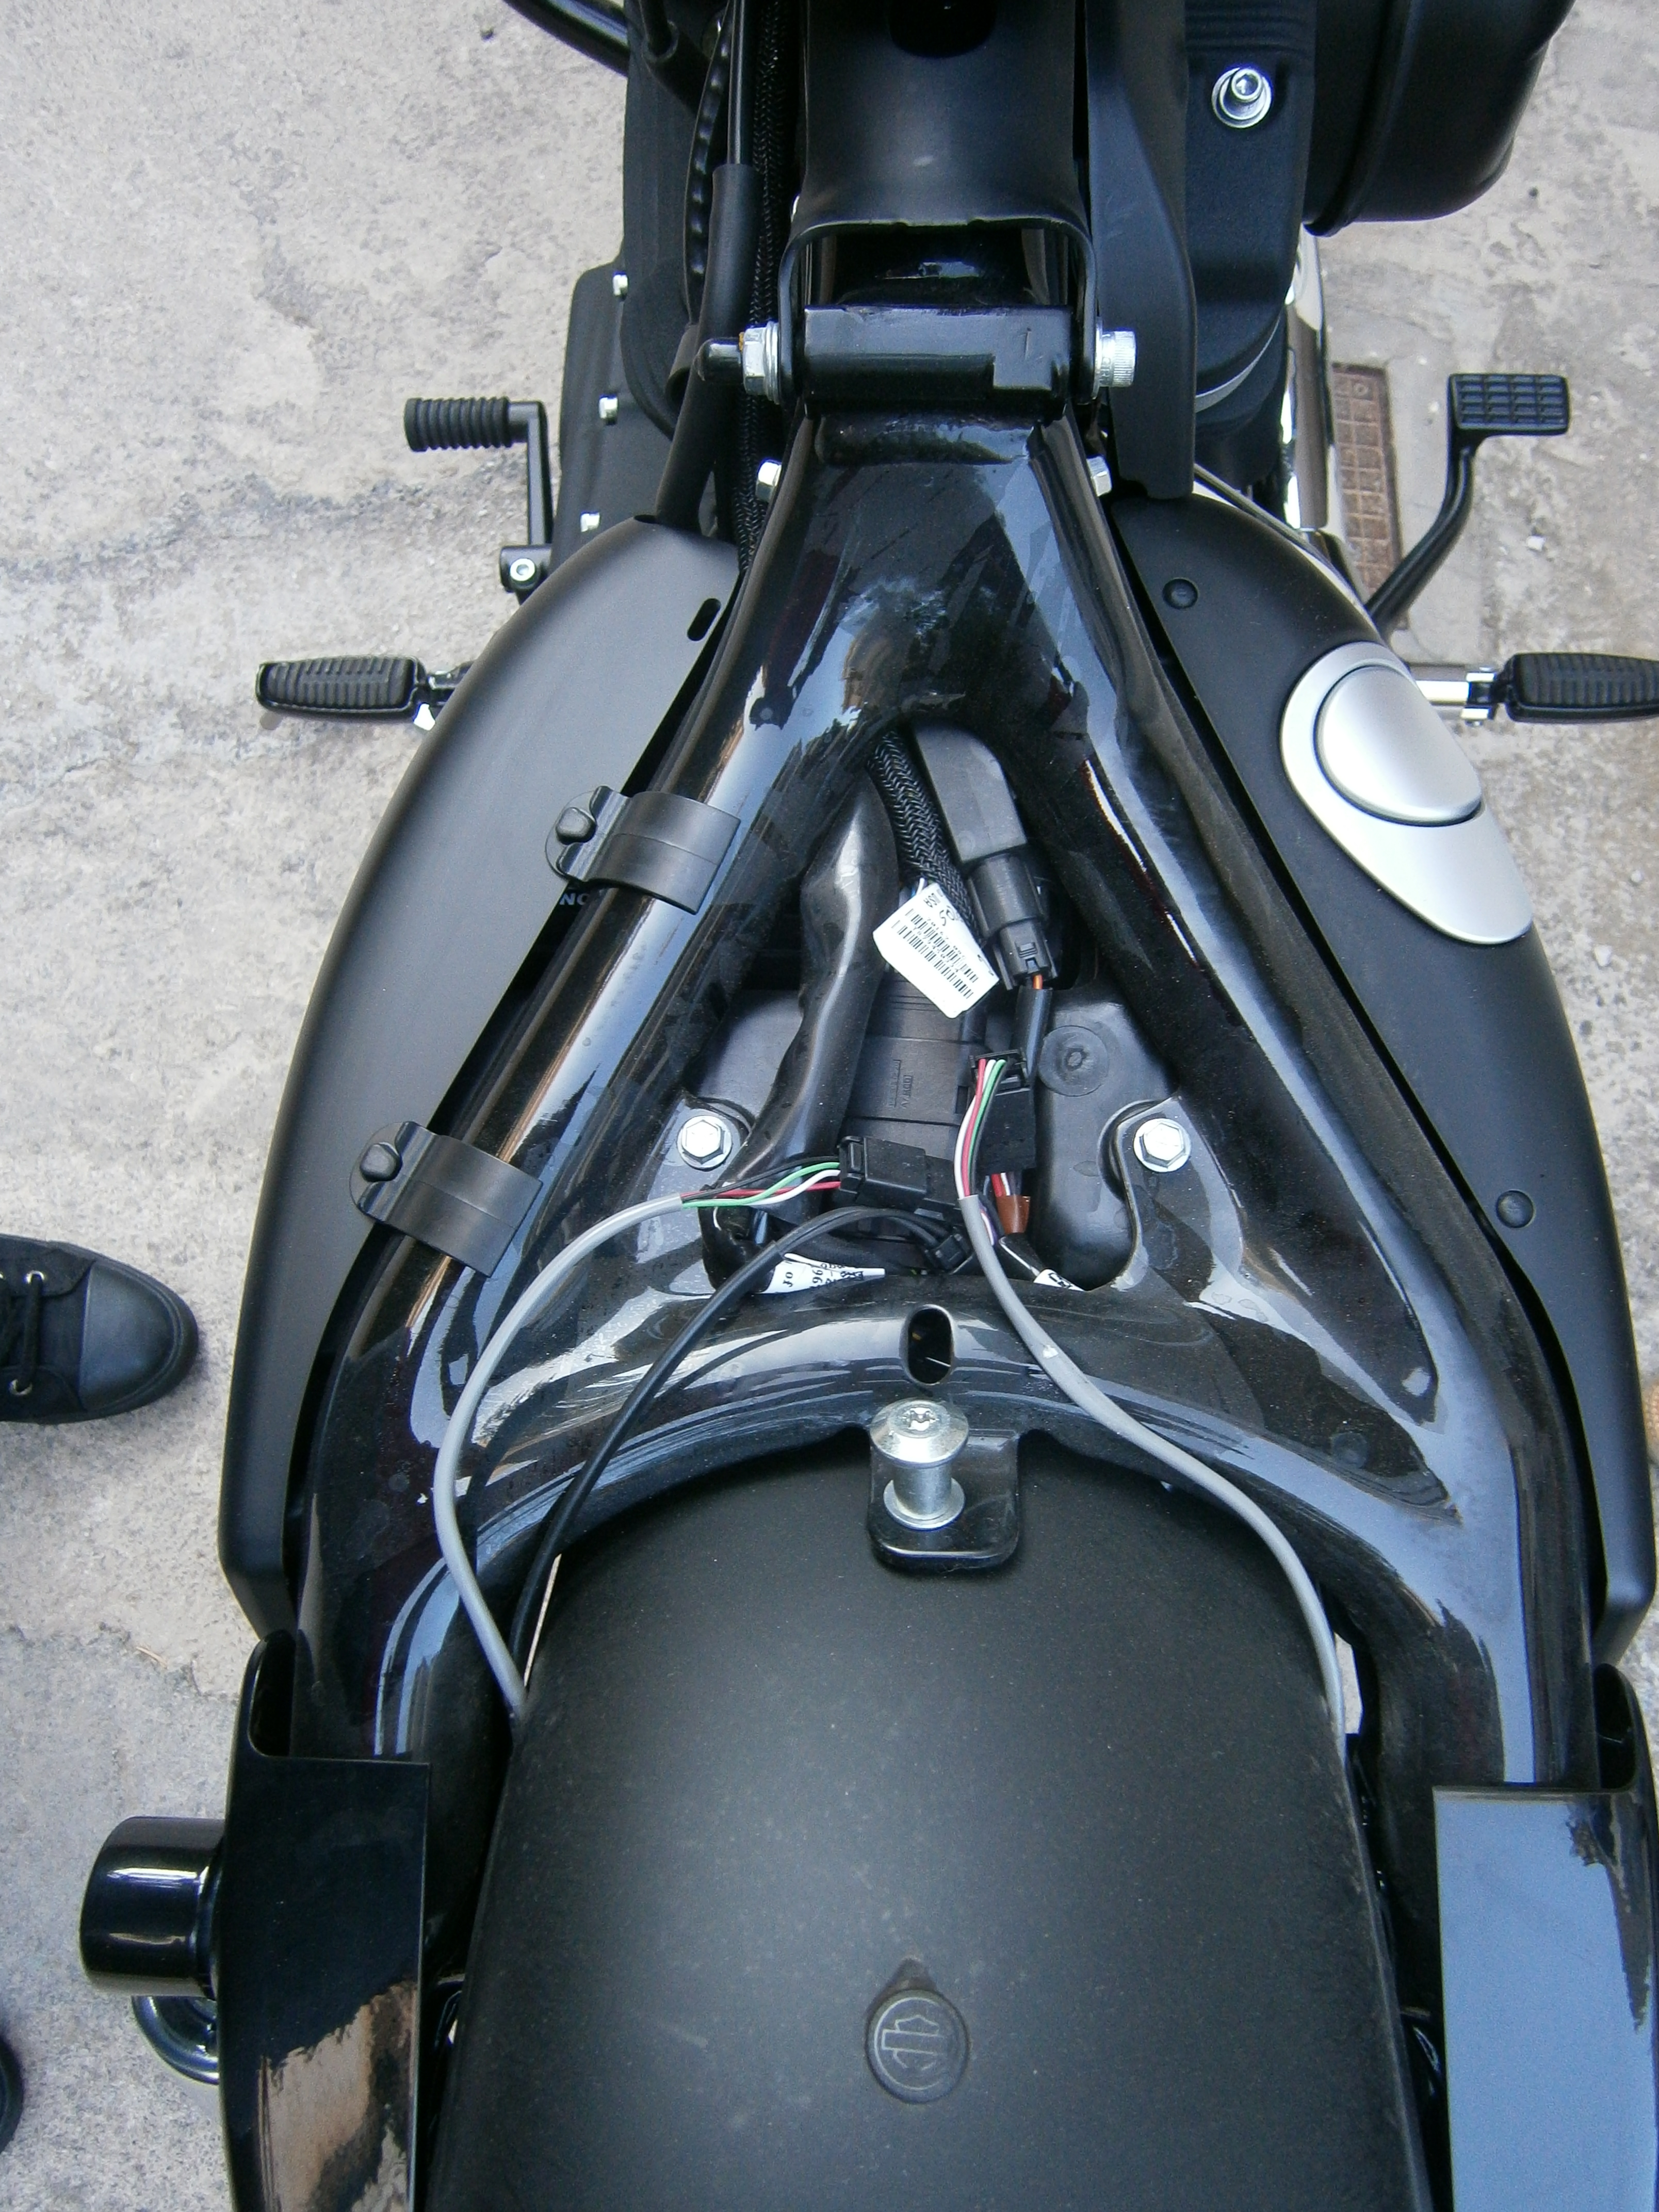 harley davidson tail light wiring diagram for trailer lights 7 way how-to: install side-mount license plate on a harley-davidson sportster | xorl %eax, %eax